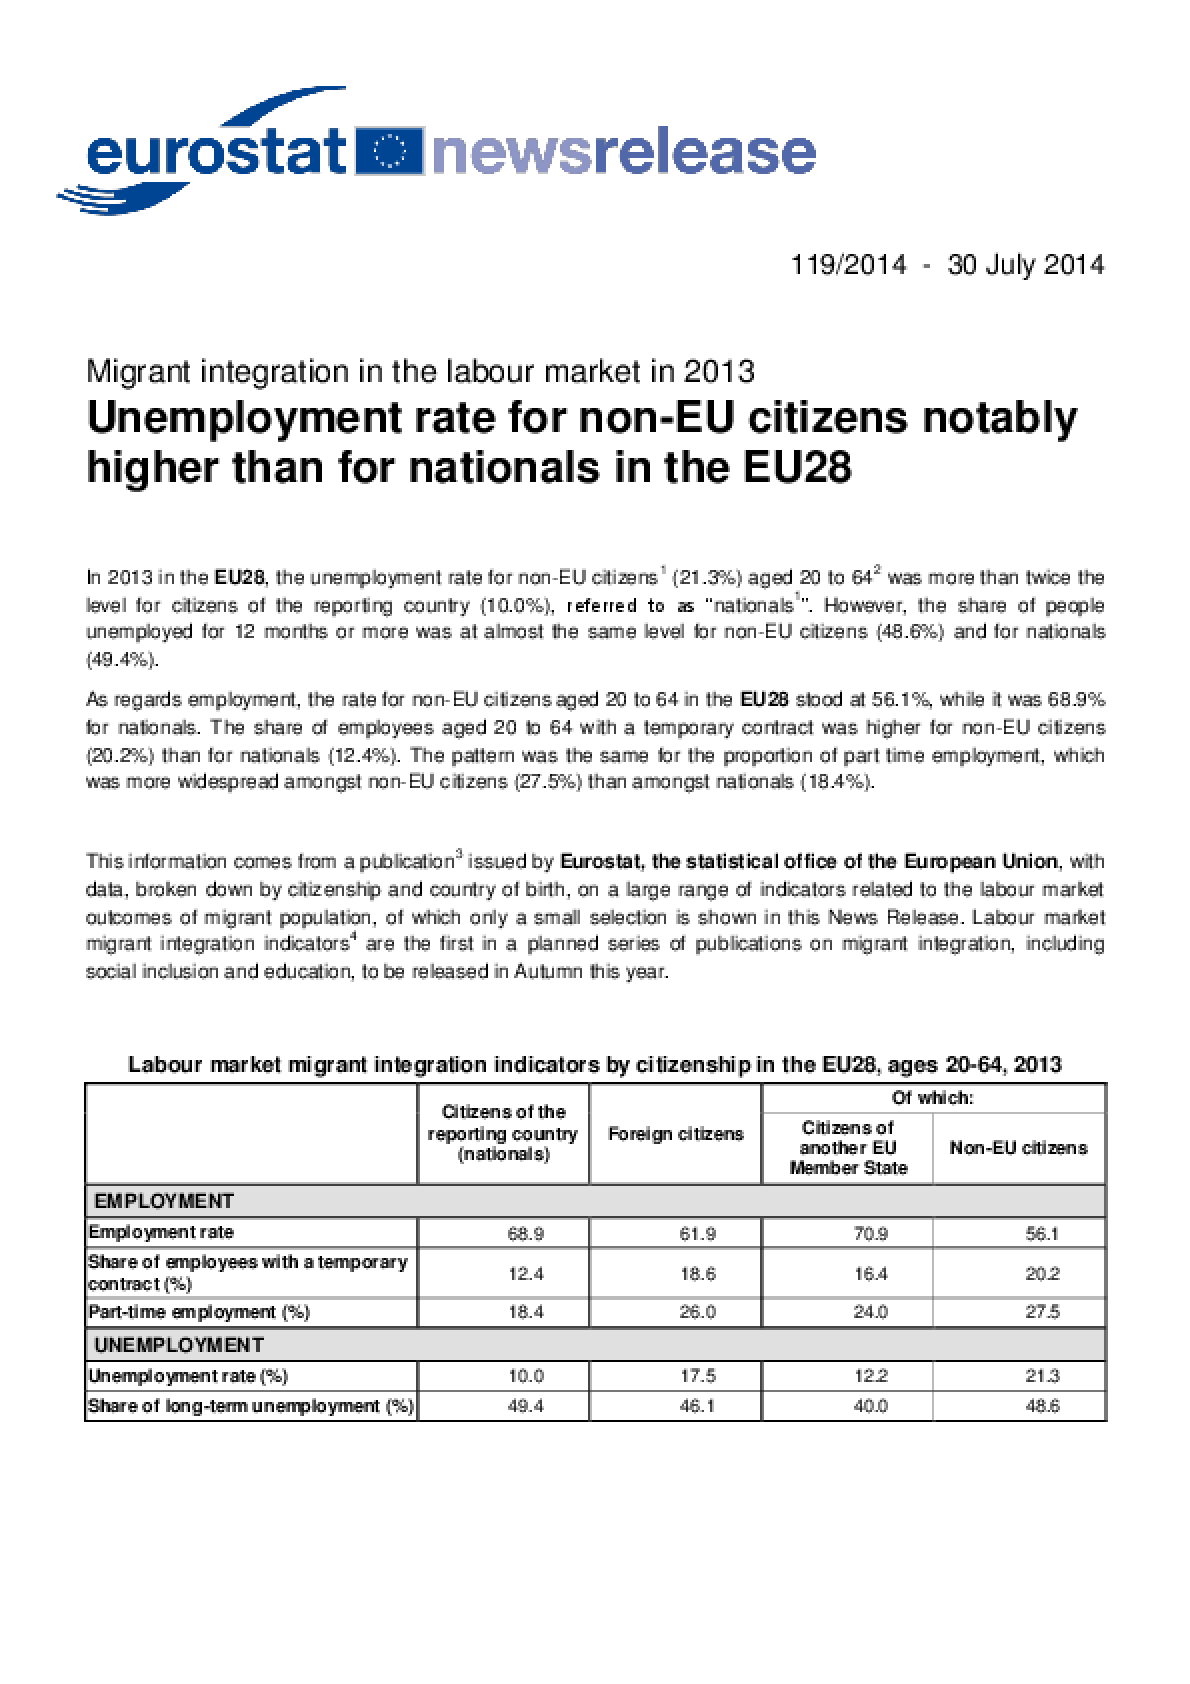 Migrant Integration in the Labour Market in 2013 Unemployment Rate for Non-EU Citizens Notably Higher than for Nationals in the EU28